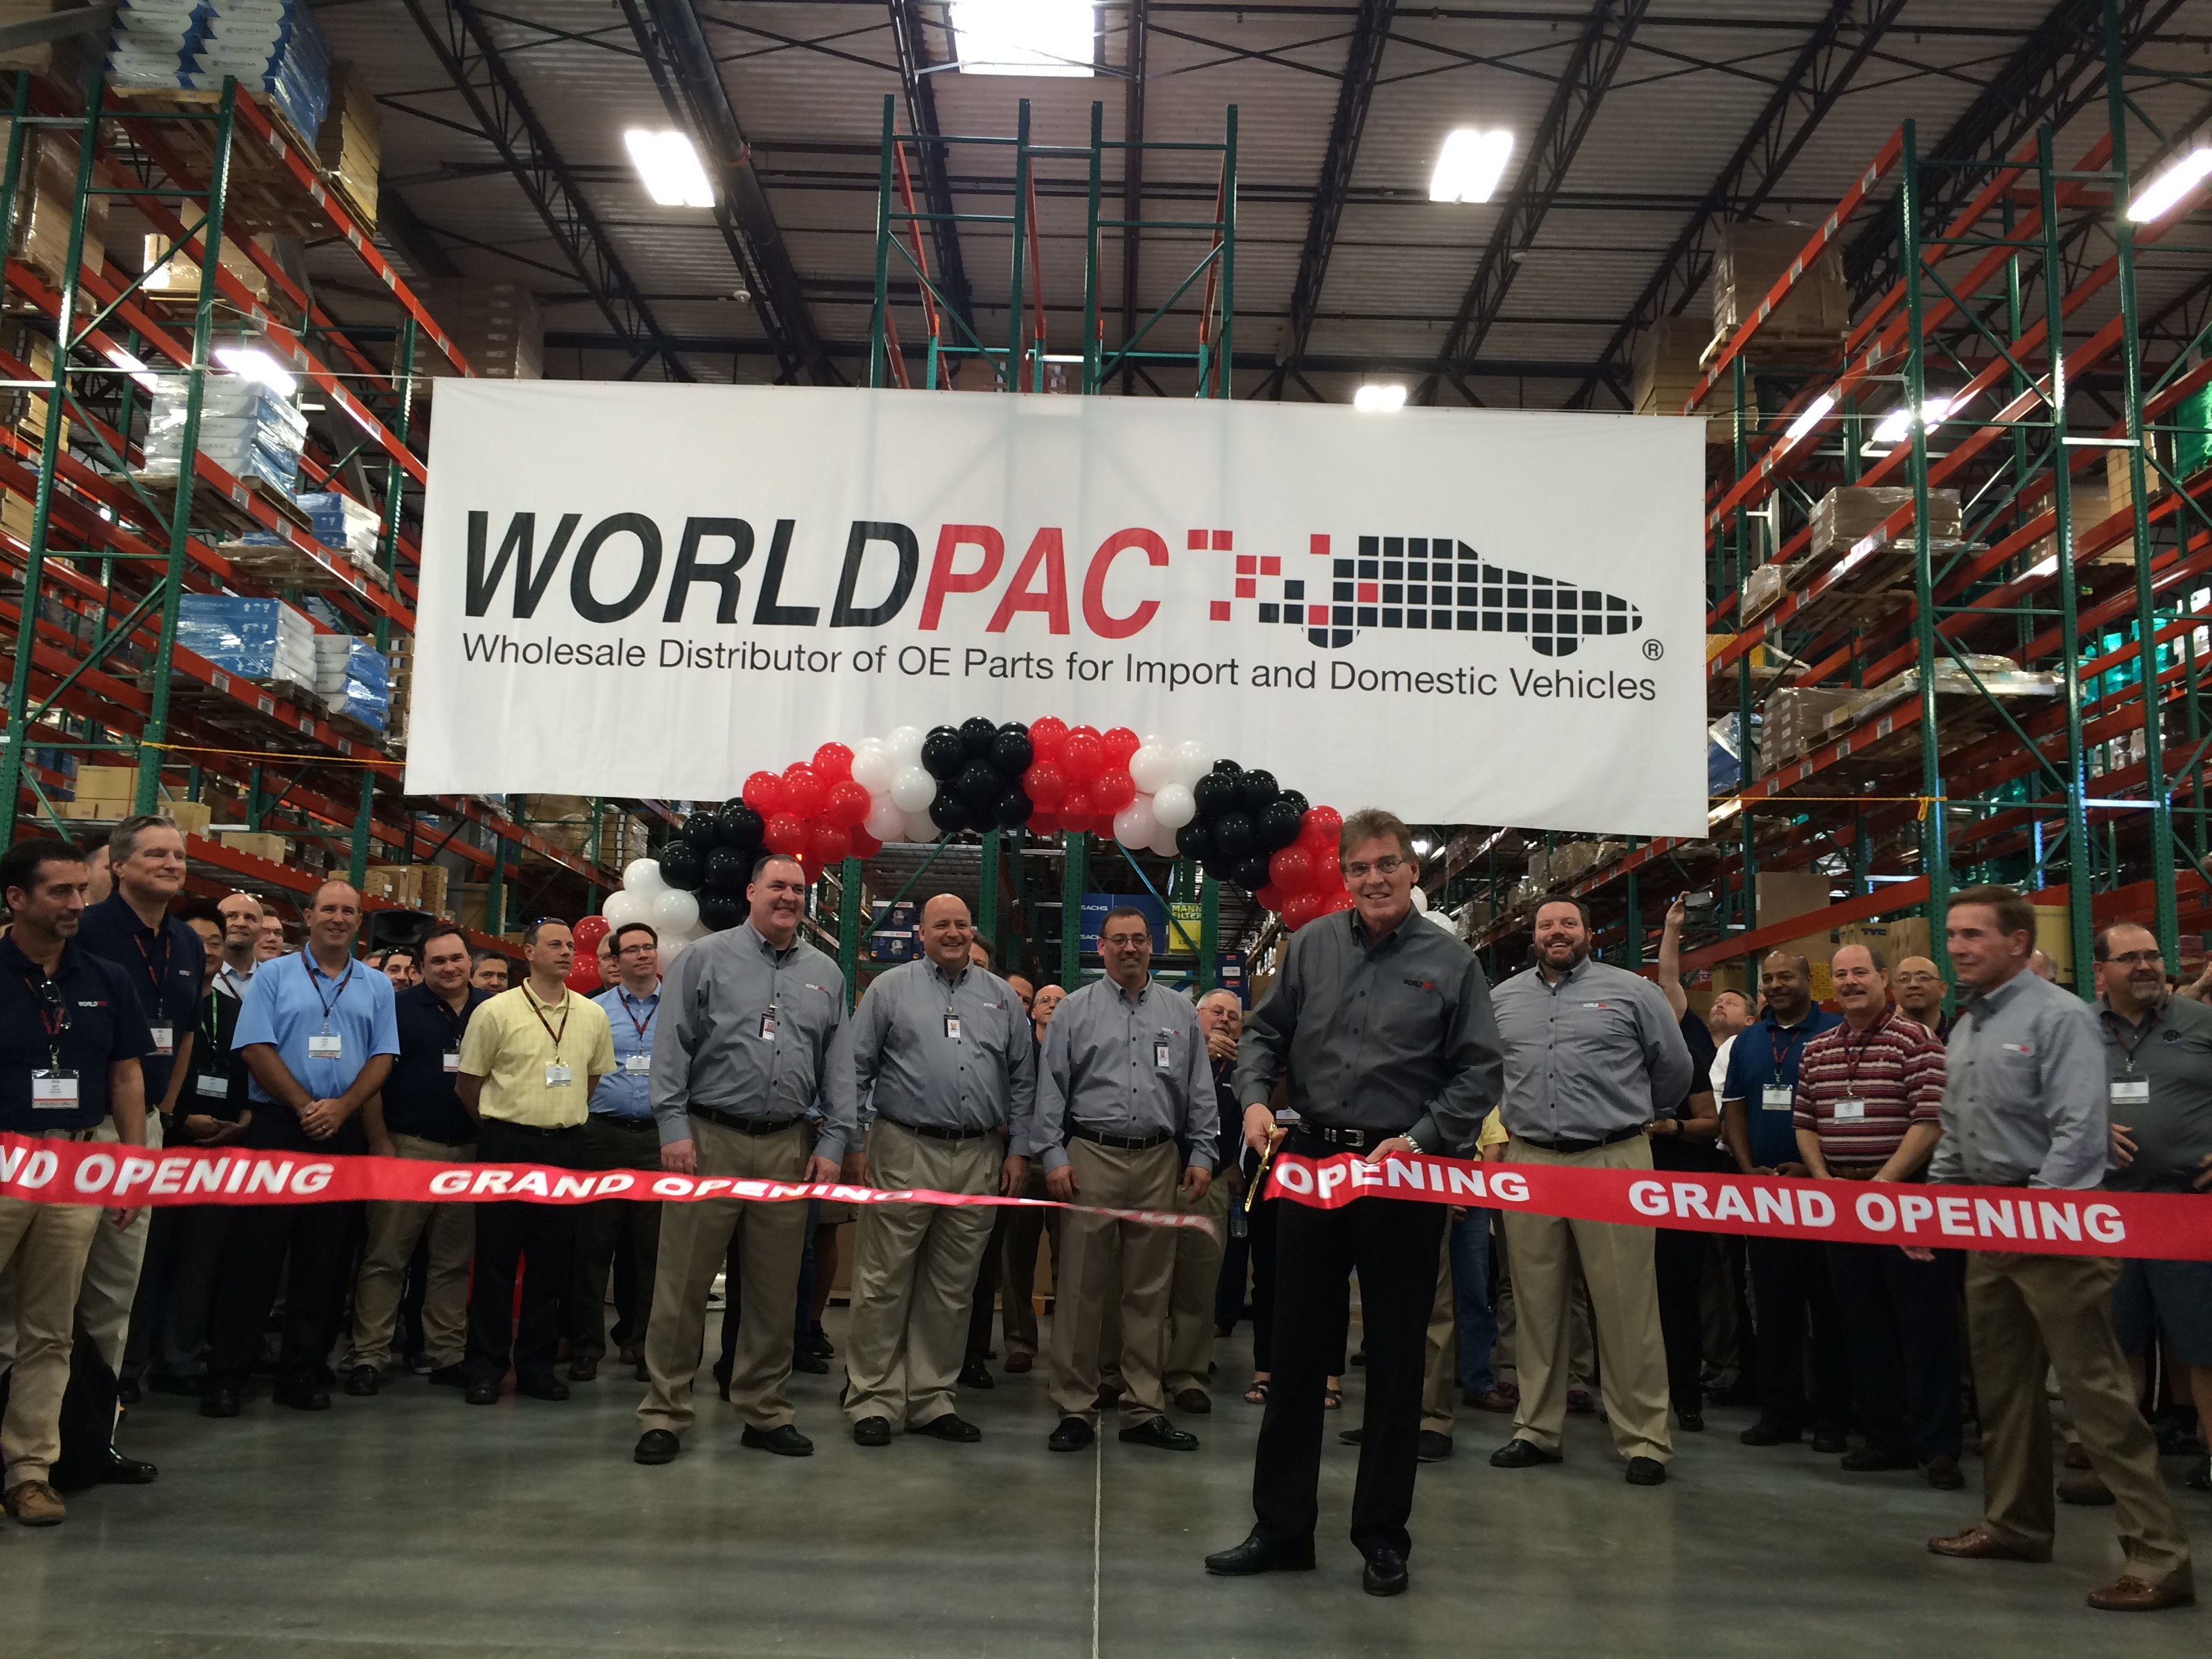 Worldpac Opens Its 5th, and Largest, Distribution Center in U.S.